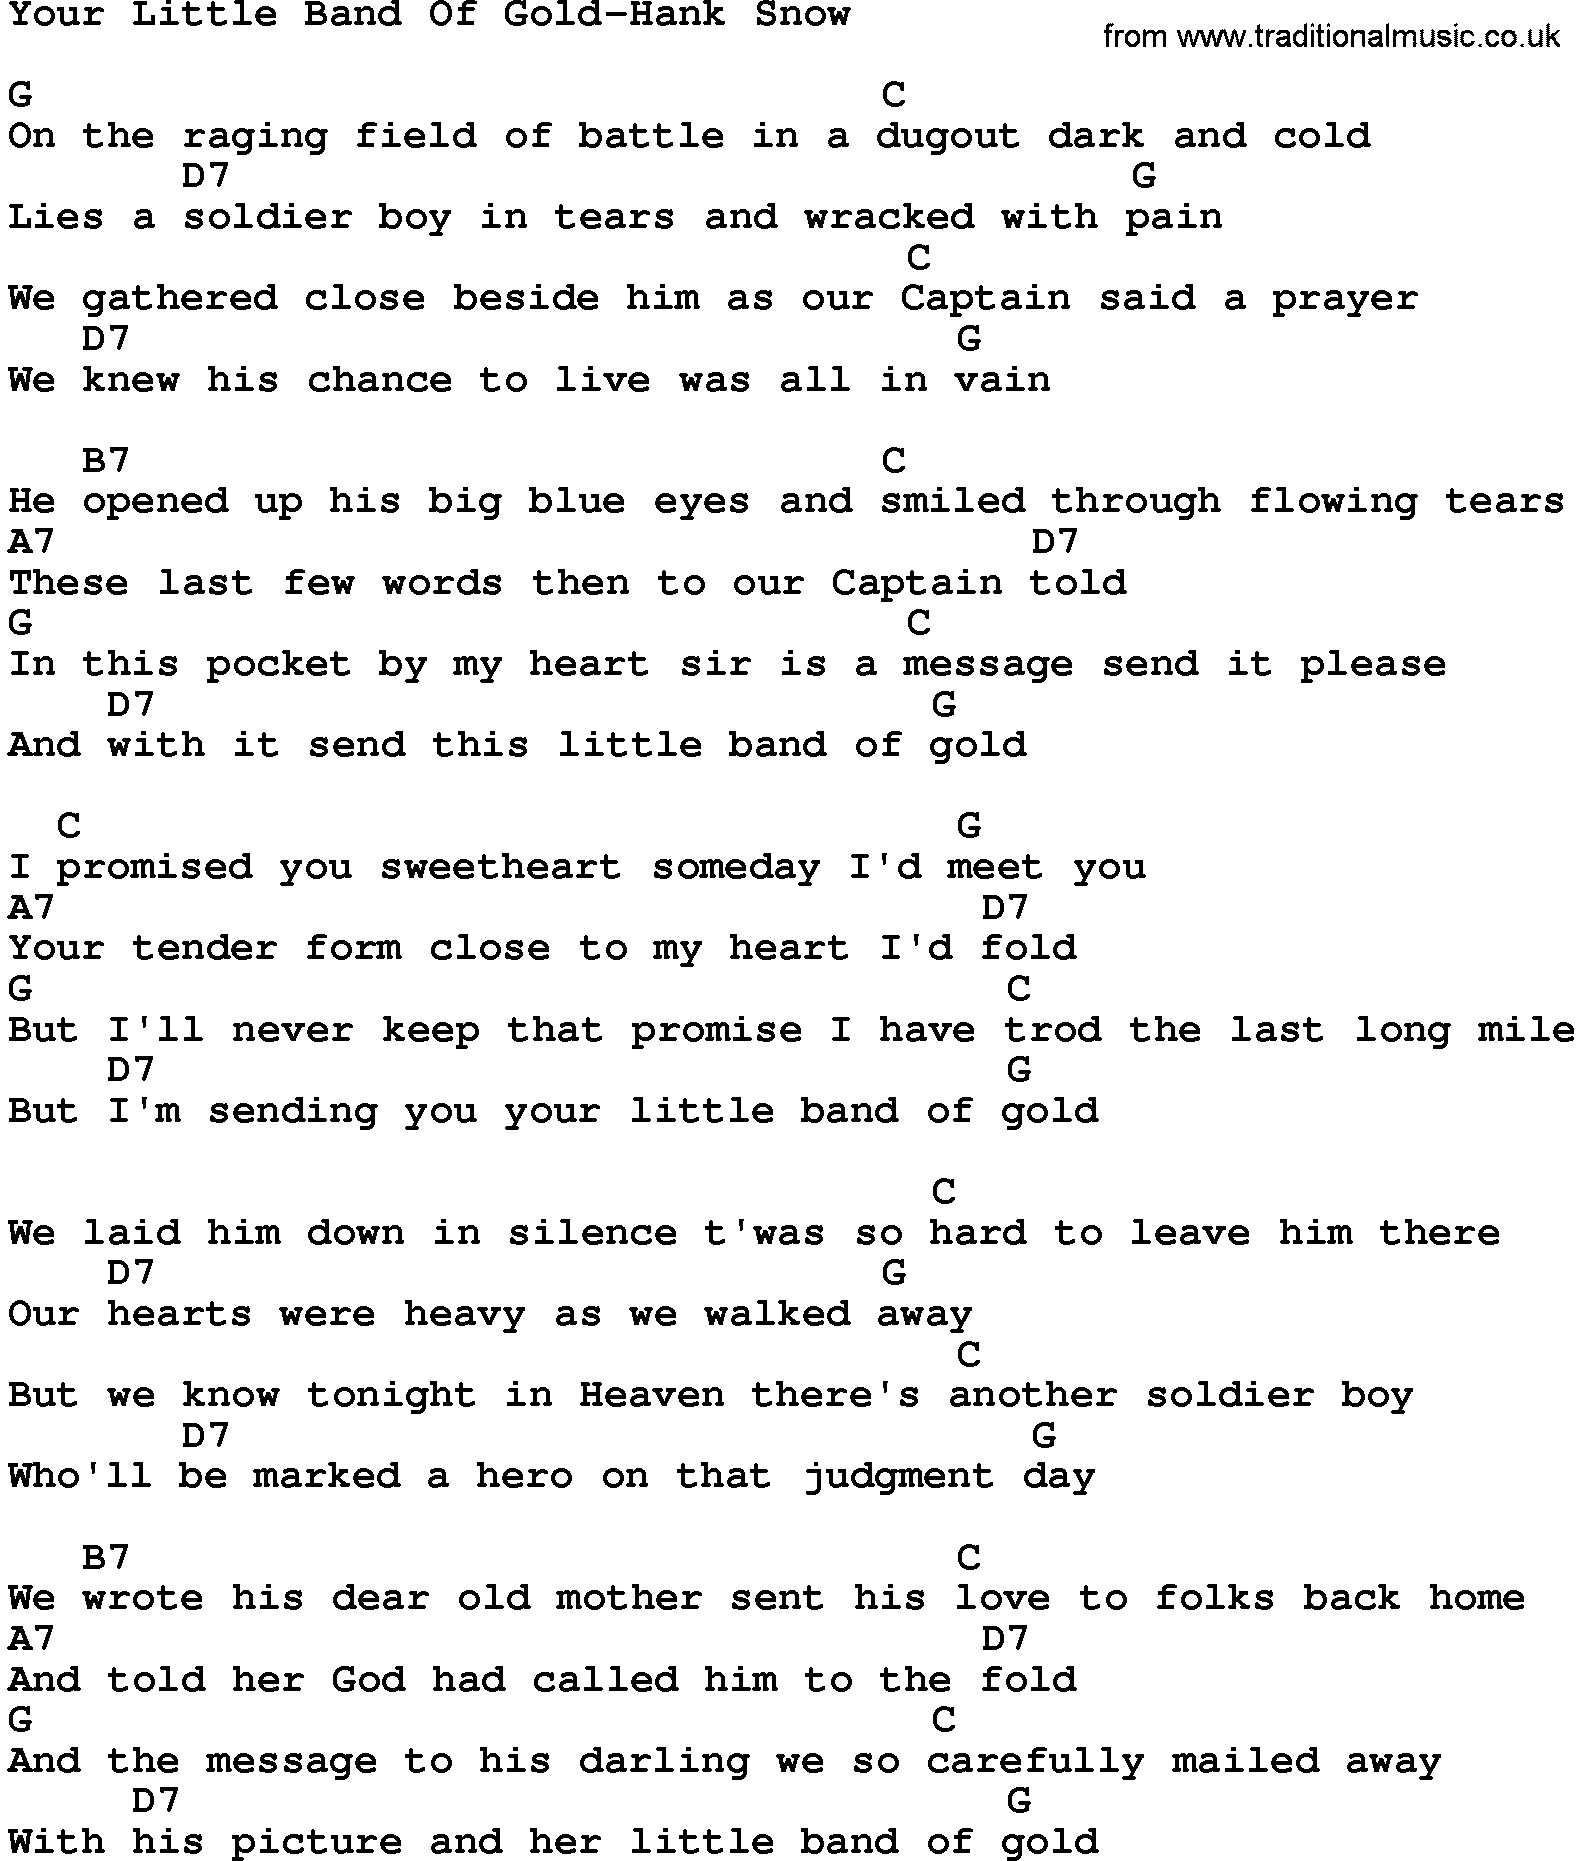 Heart Of Gold Chords Country Musicyour Little Band Of Gold Hank Snow Lyrics And Chords